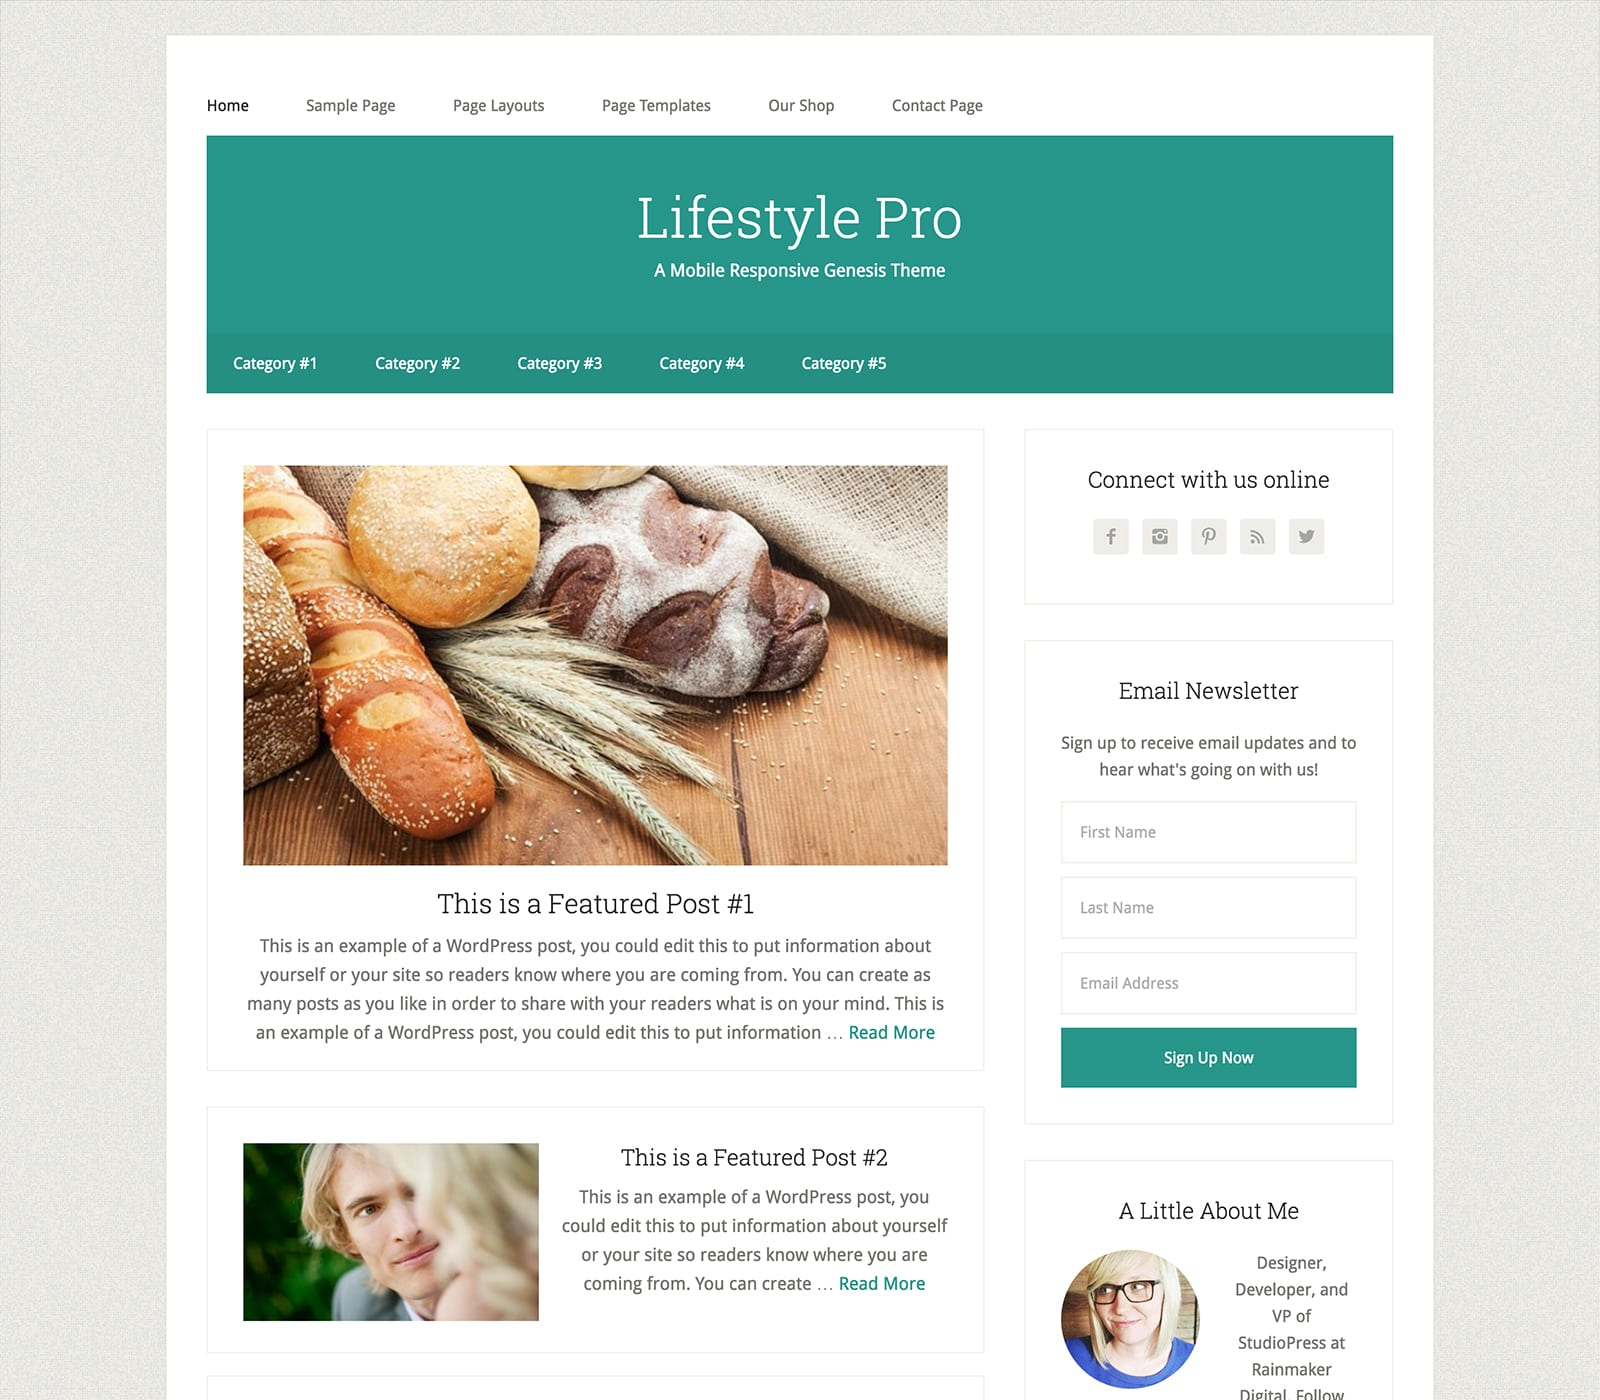 LIfestyle Pro offers a magazine-style frame with style and flexibility. It offers a clean design with smart layouts and design options. It's ideal for lifestyle bloggers and niche websites designed to submit a library of articles.